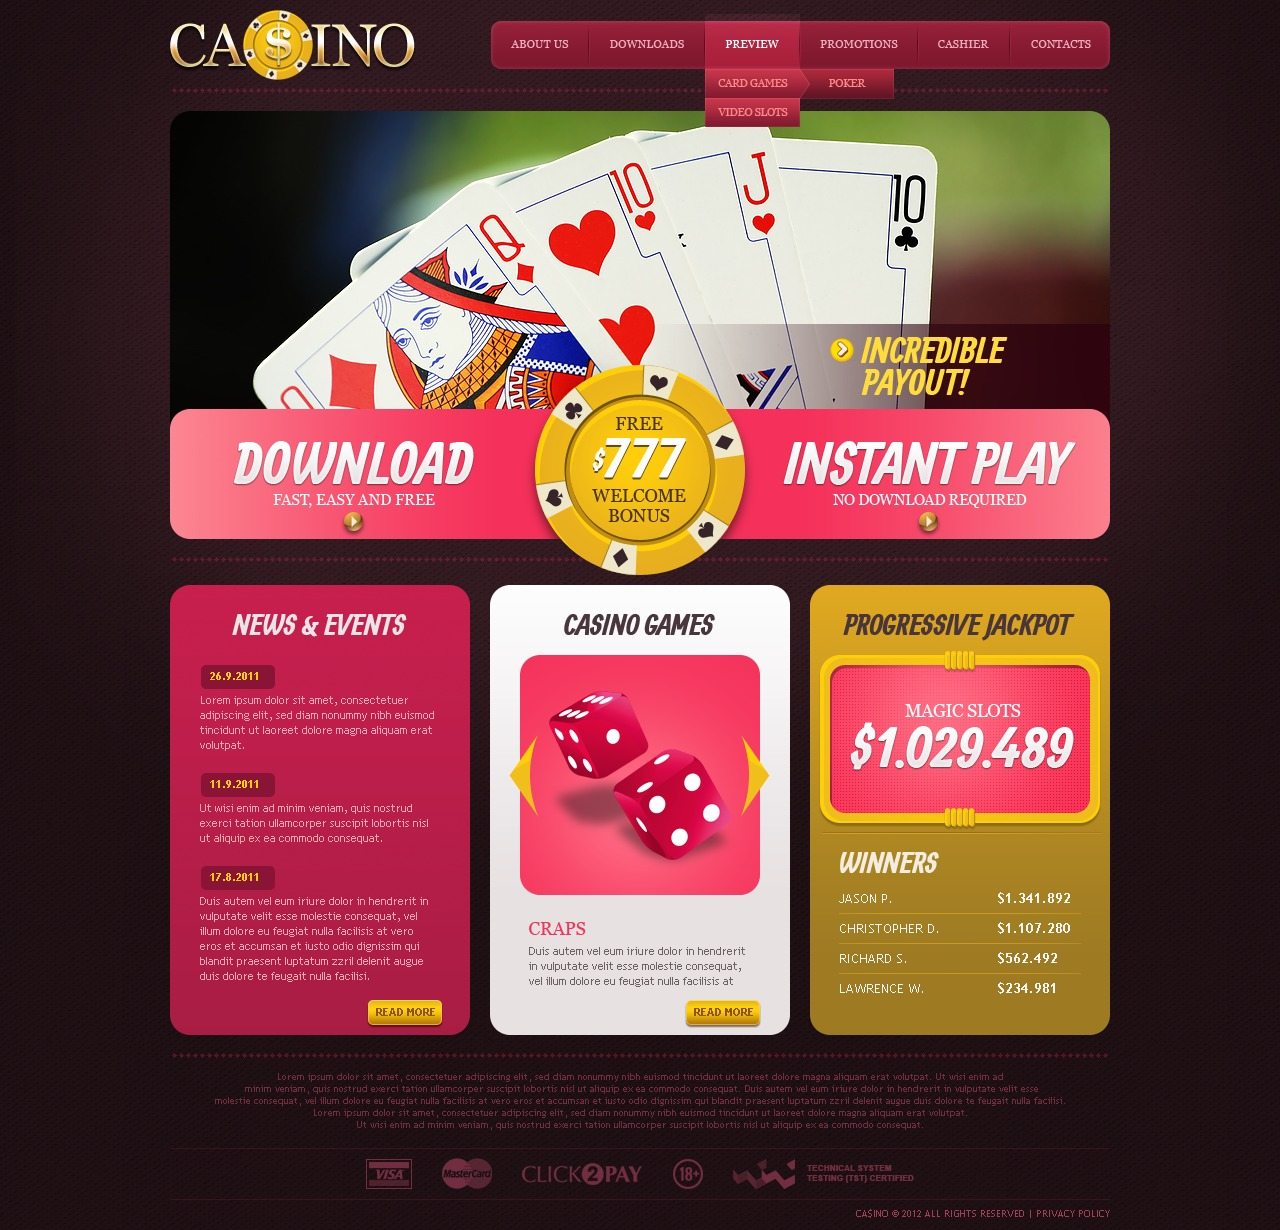 online casino websites www.casino-spiele.de